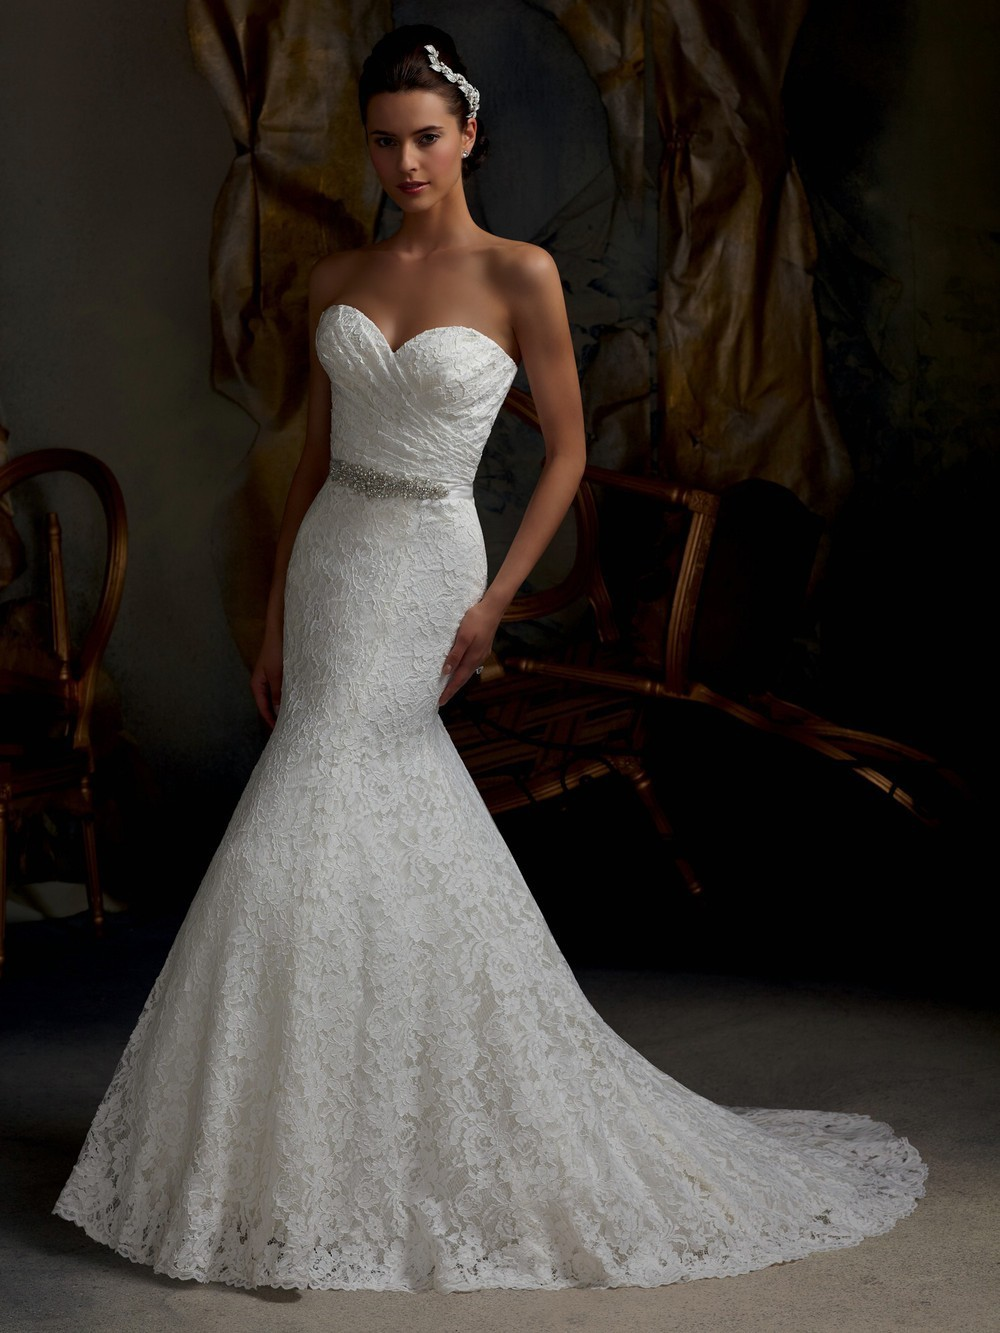 Mermaid Lace Wedding Dress With Bling Cherrymarry